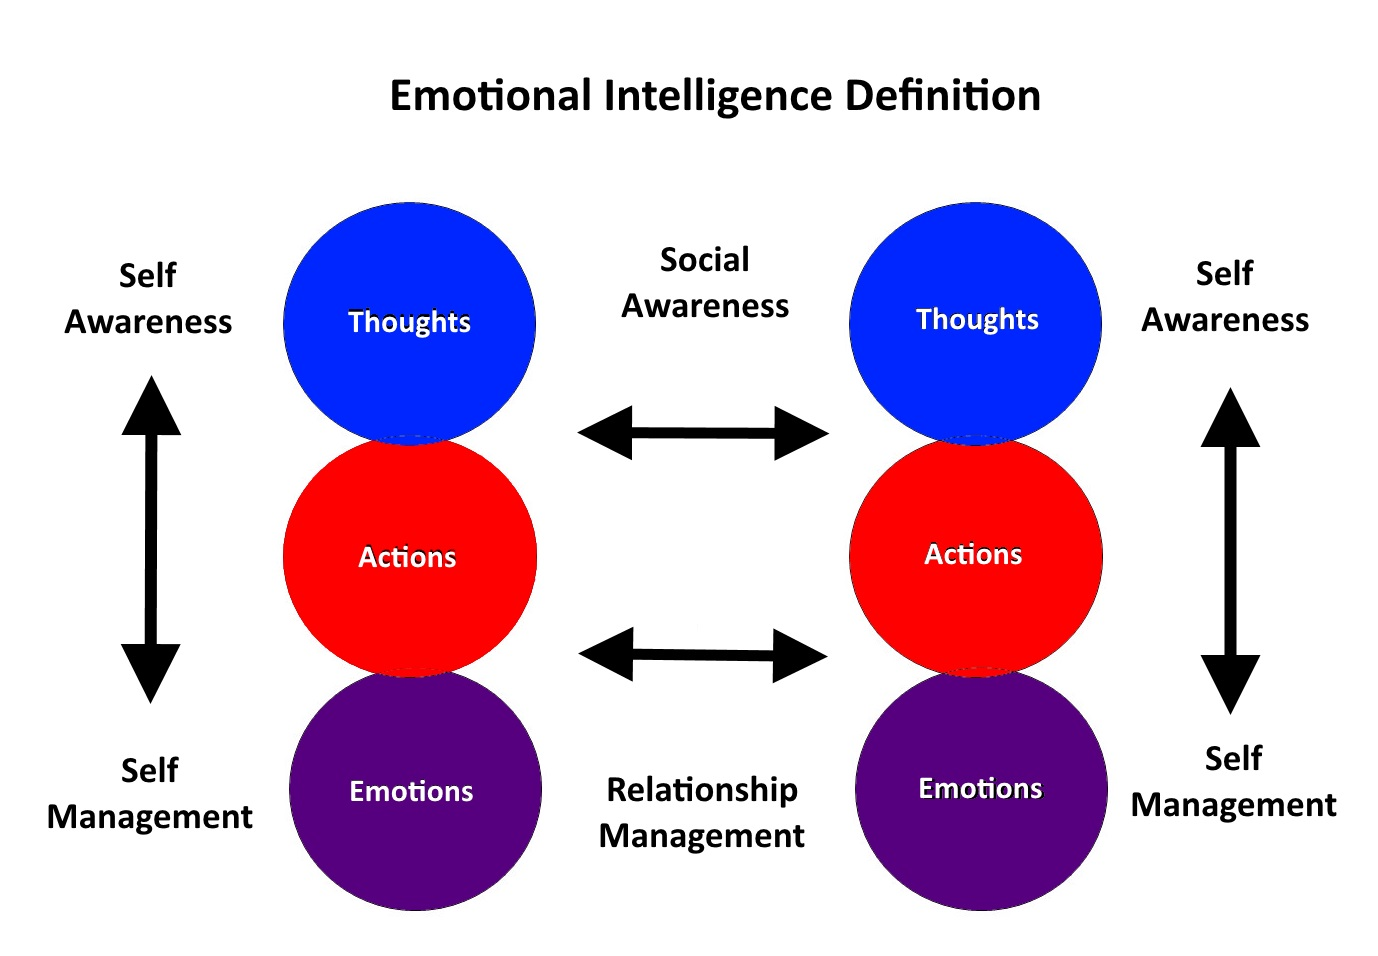 definition paper emotional intelligence Summary: emotional intelligence (eq) is defined as the ability to identify, assess, and control one's own emotions, the emotions of others, and that of groups.